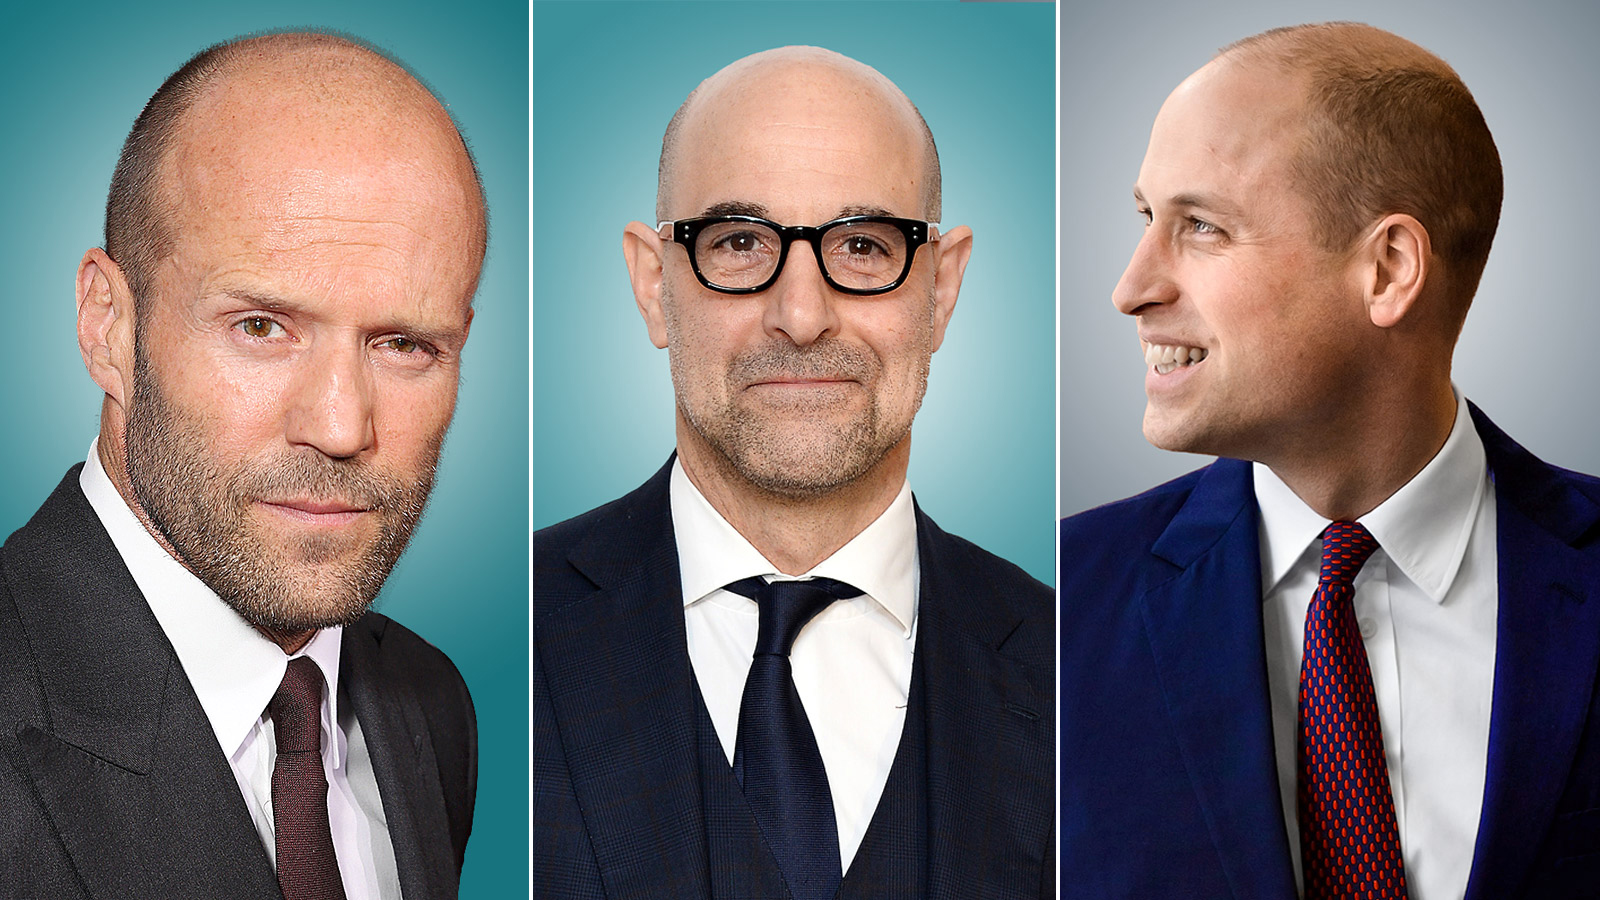 Going Going Bald Why Men Are Obsessed With Their